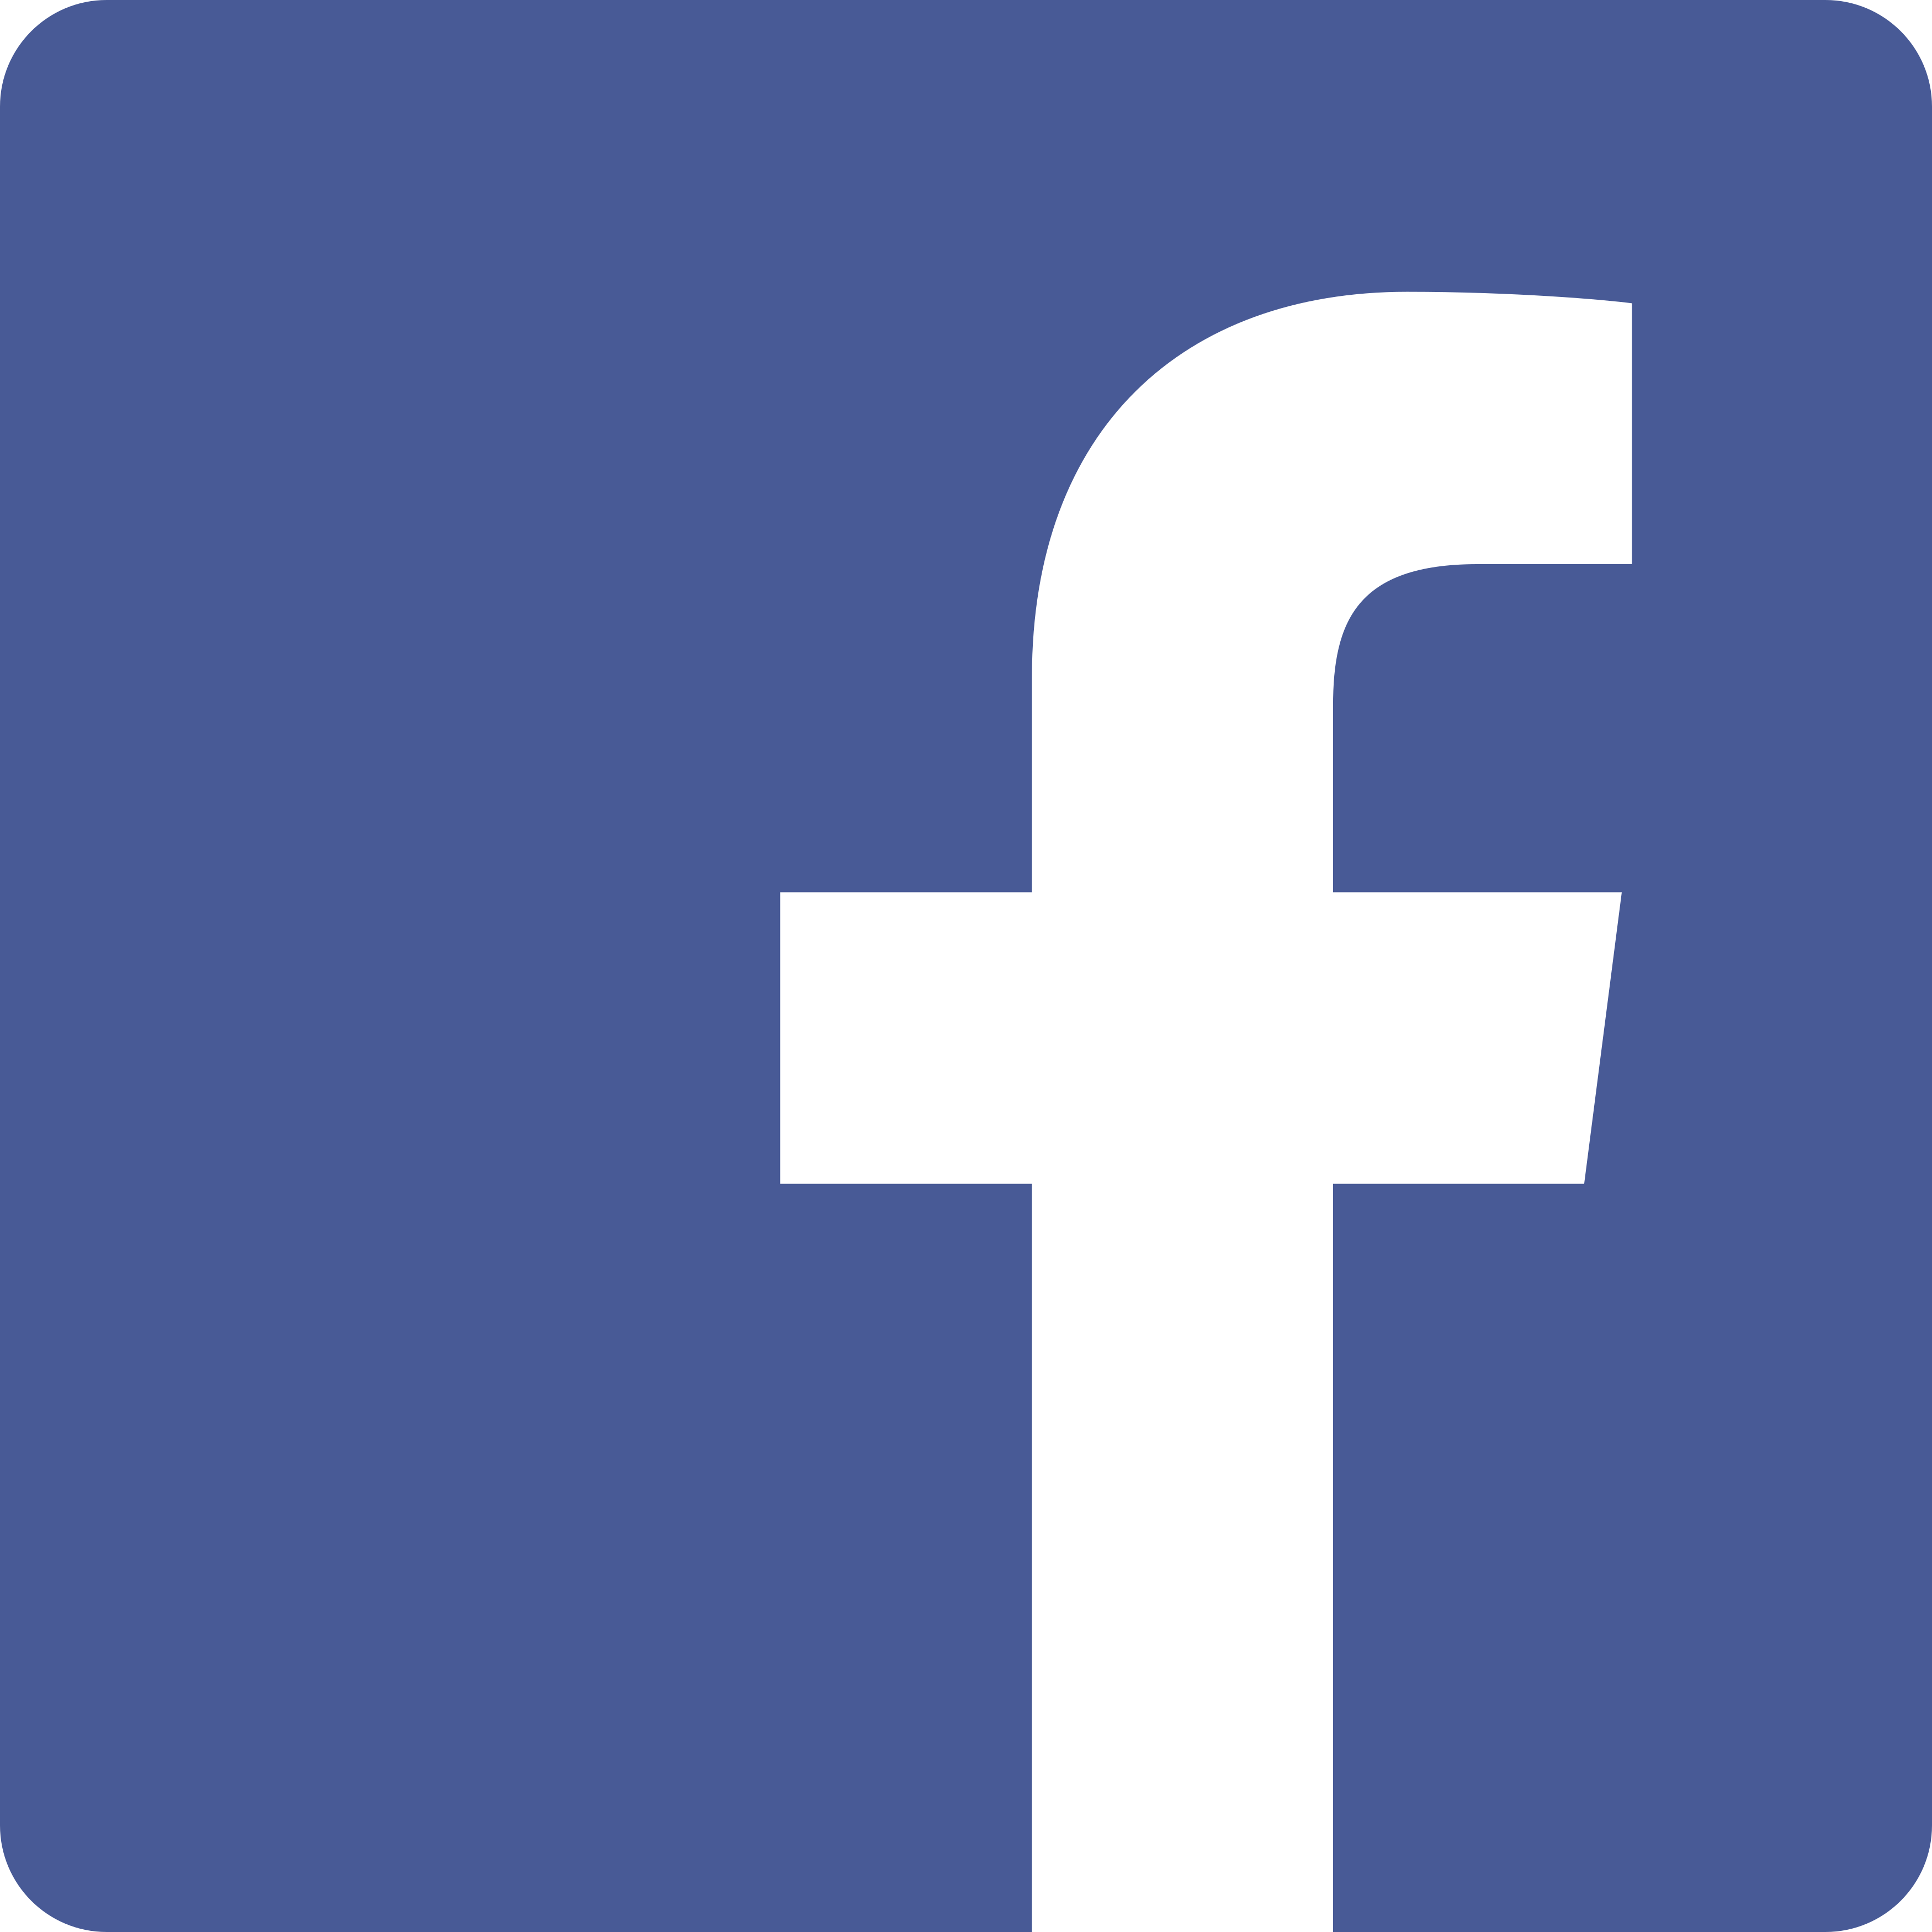 facebook icone icon